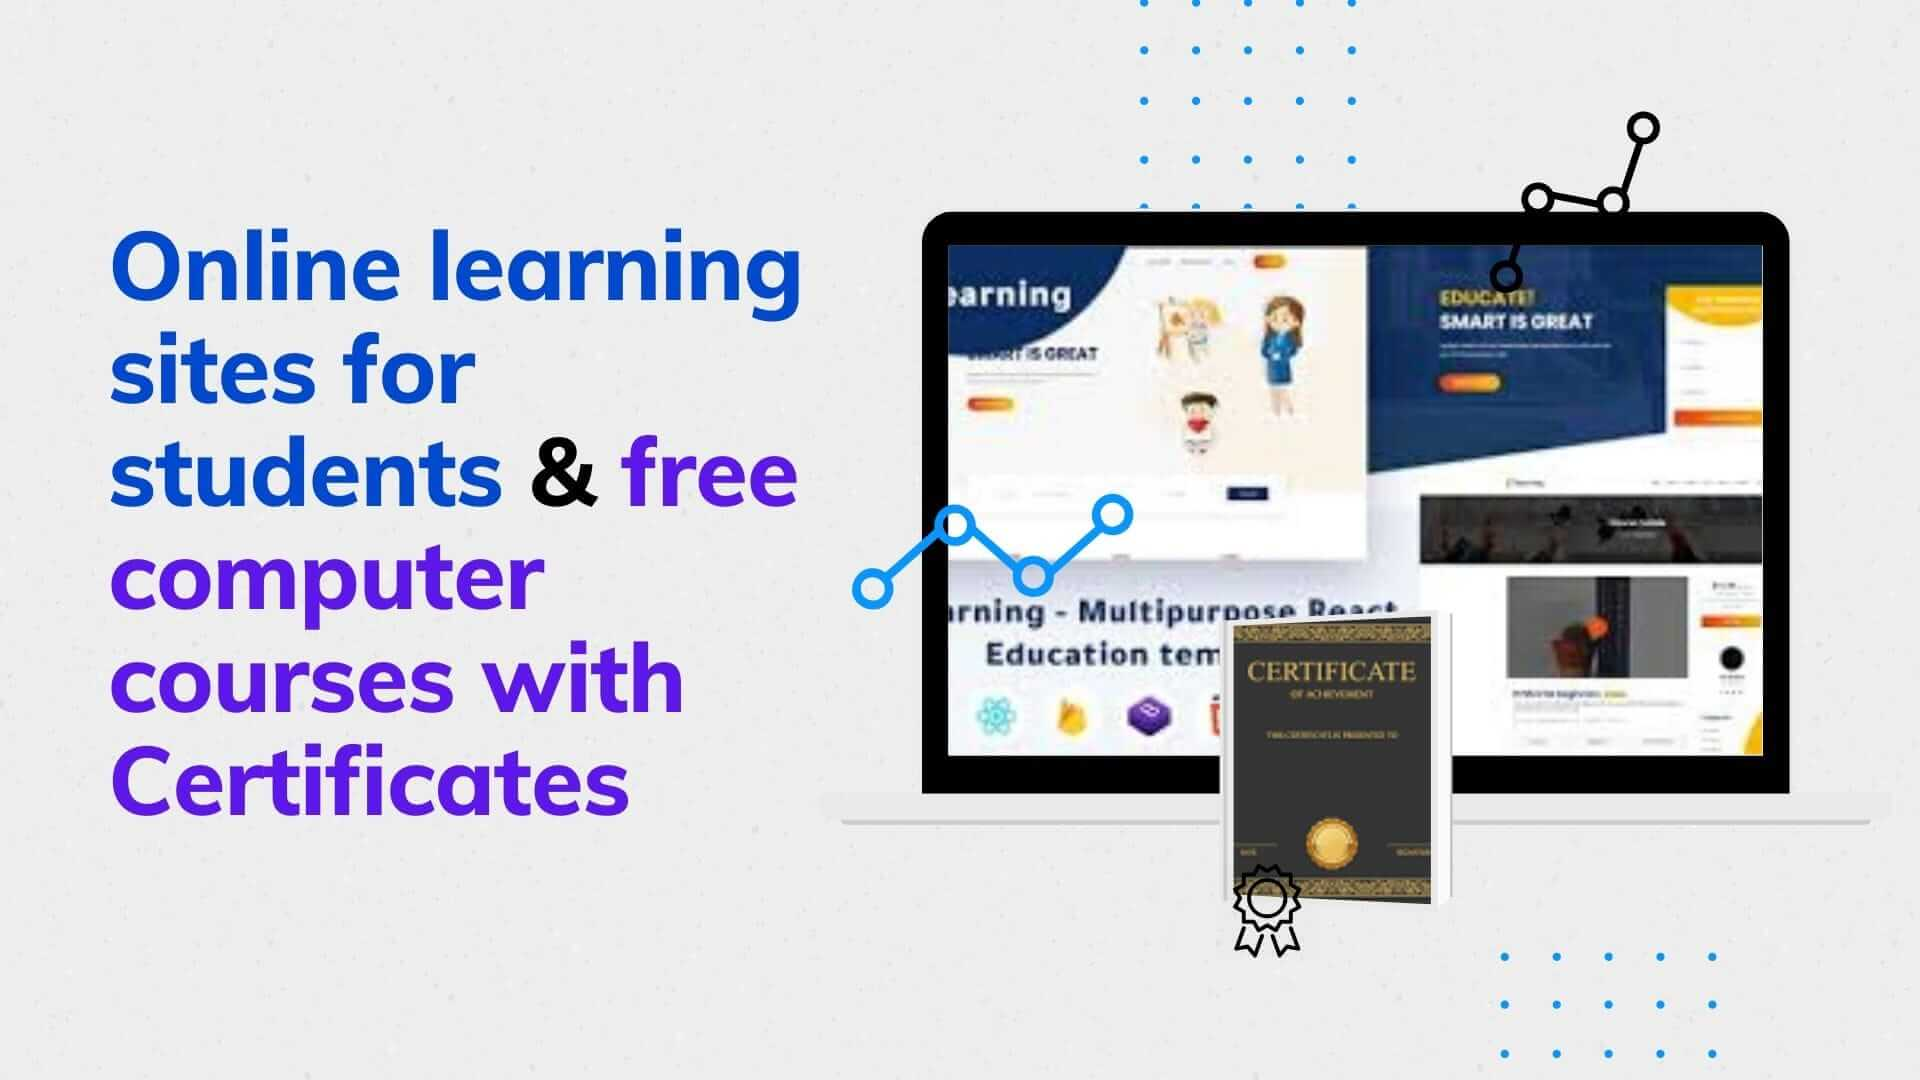 E-learning websites for computer courses with free easy online certifications